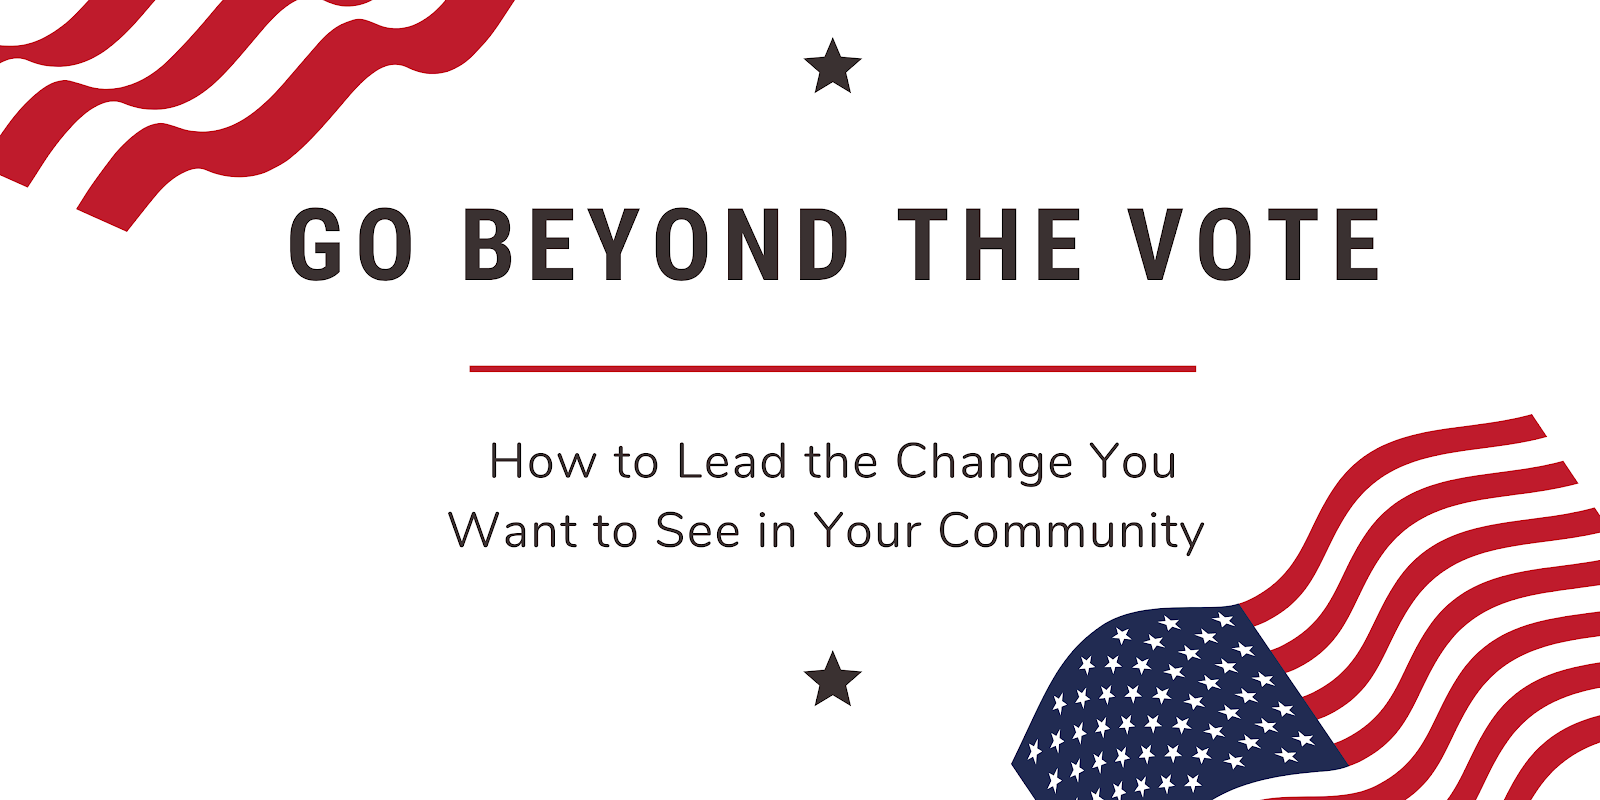 How to Lead the Change You Want to See in Your Community